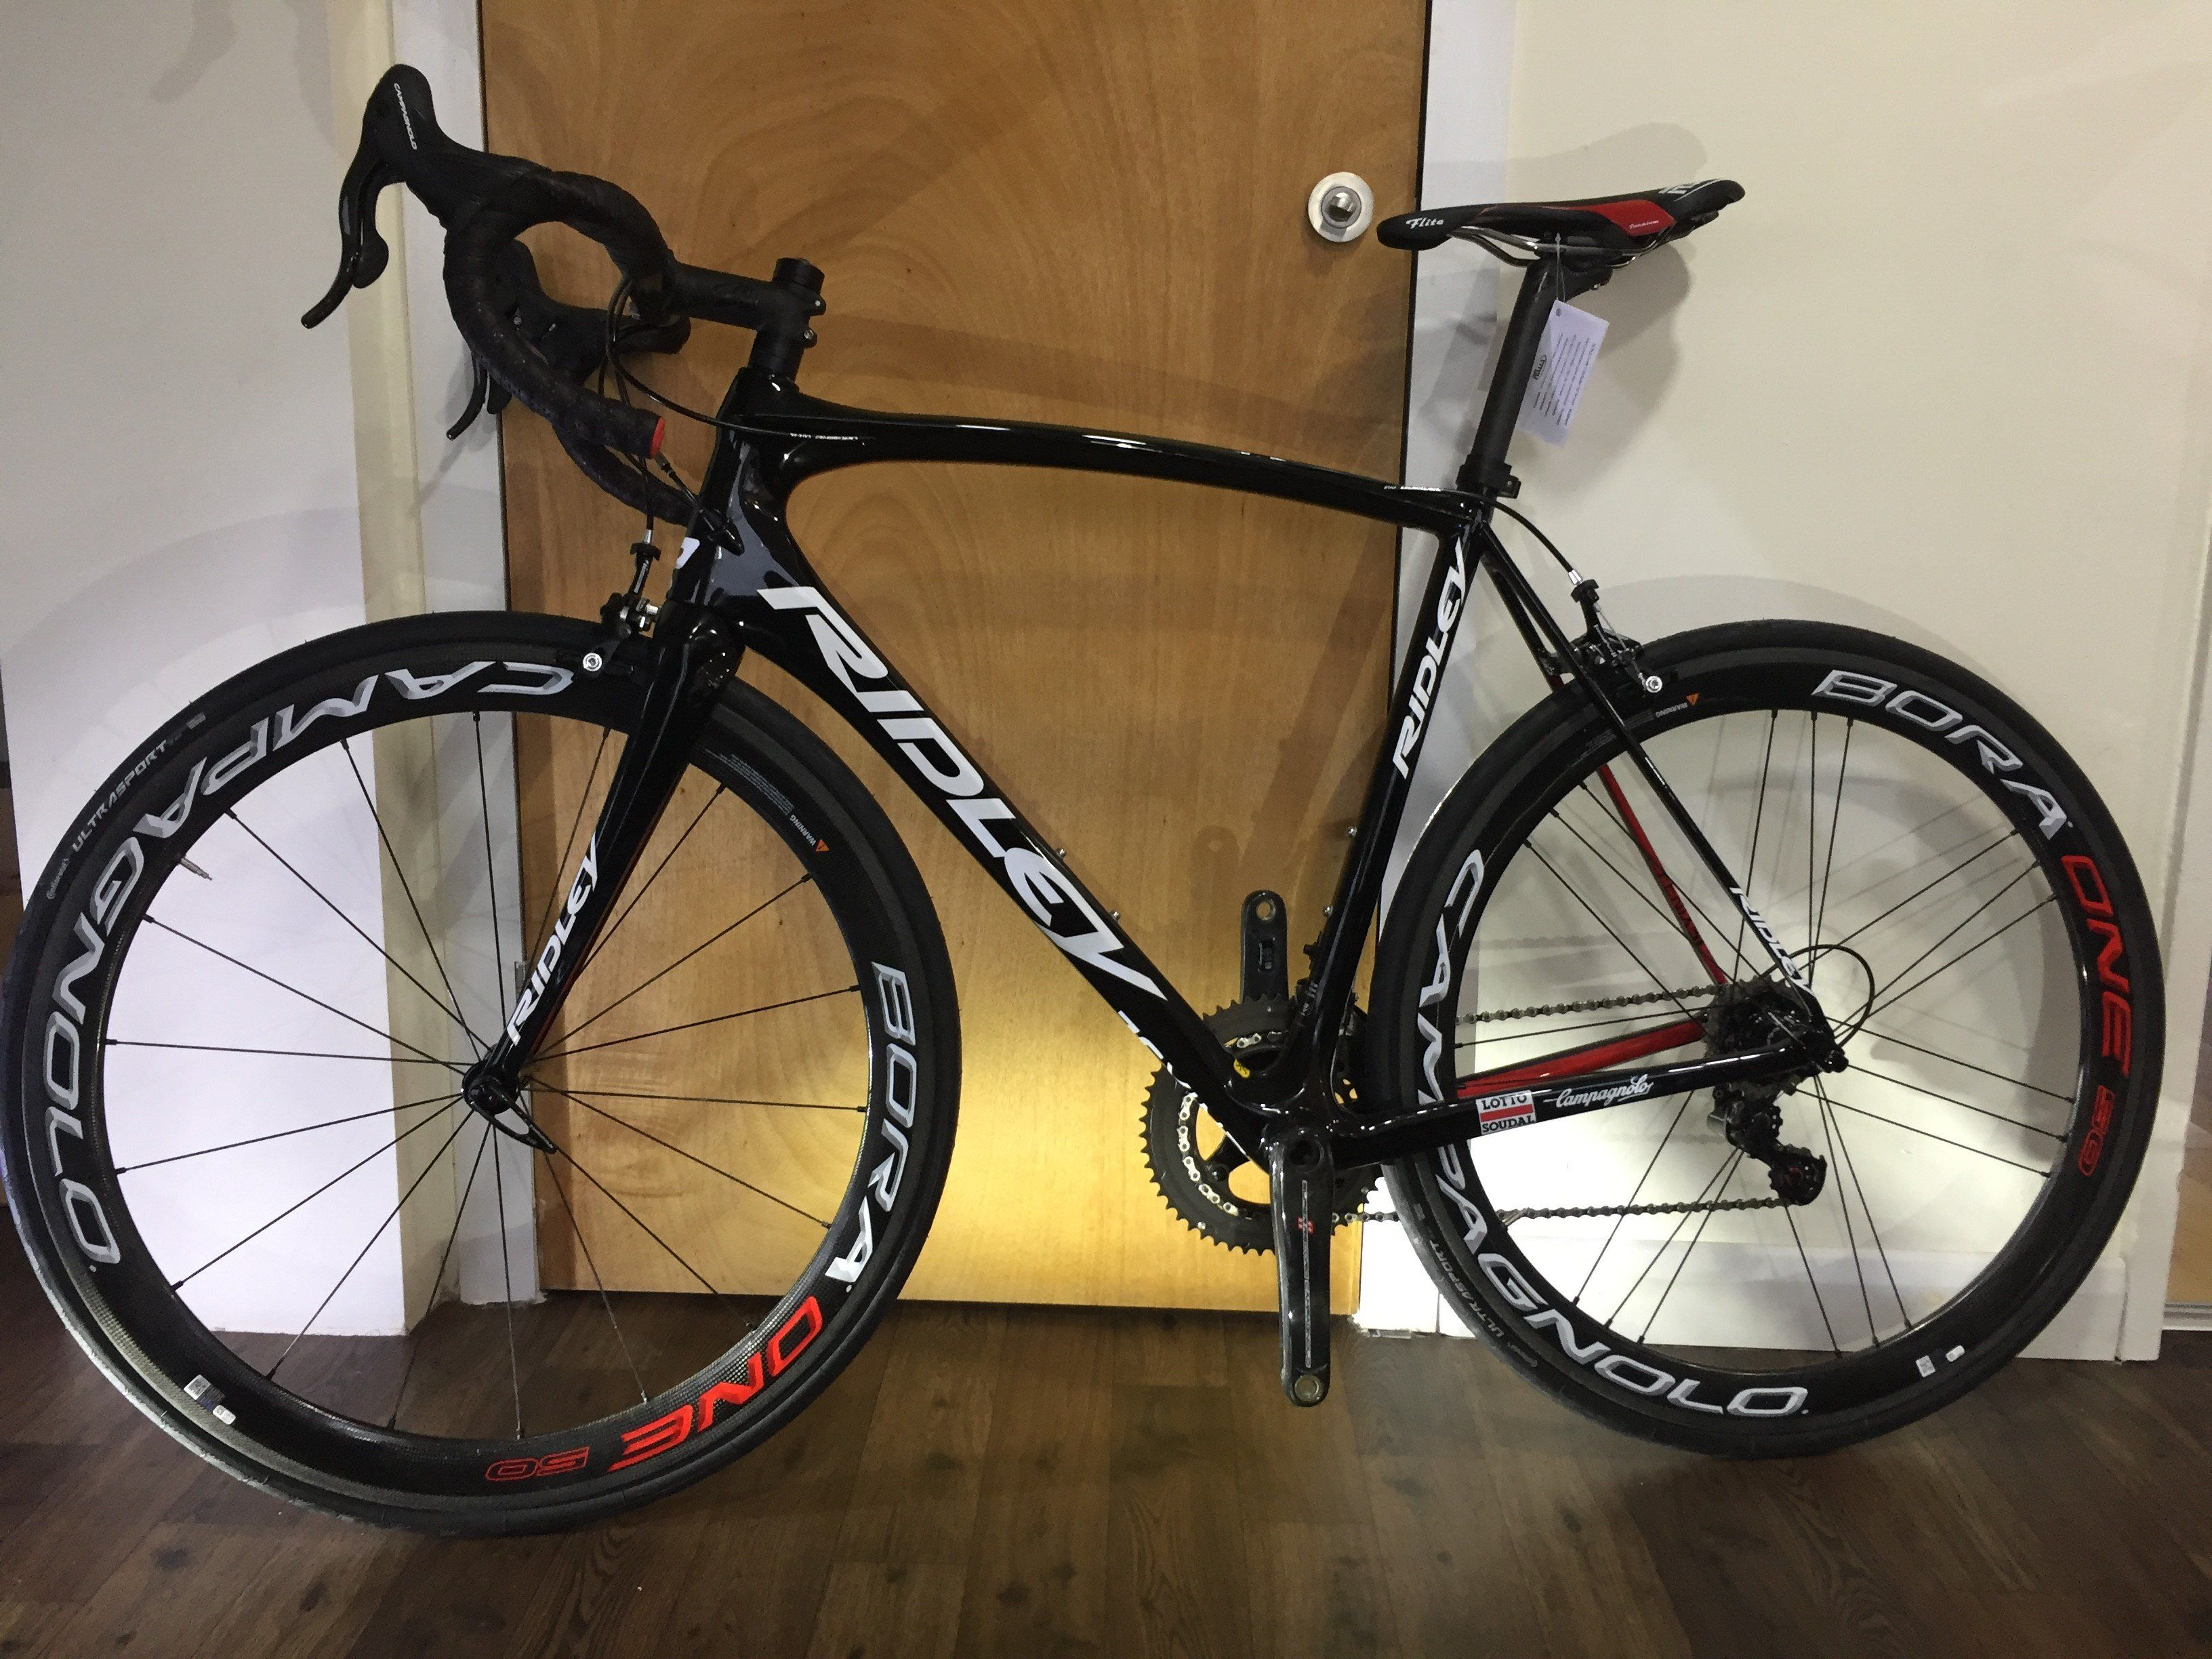 65008a0b5 Ridley Fenix SL Custom Build with Super Record and Bora One Wheels – Never  ridden. Size Med. can deliver or post as still have box it was delivered in.  Bike ...